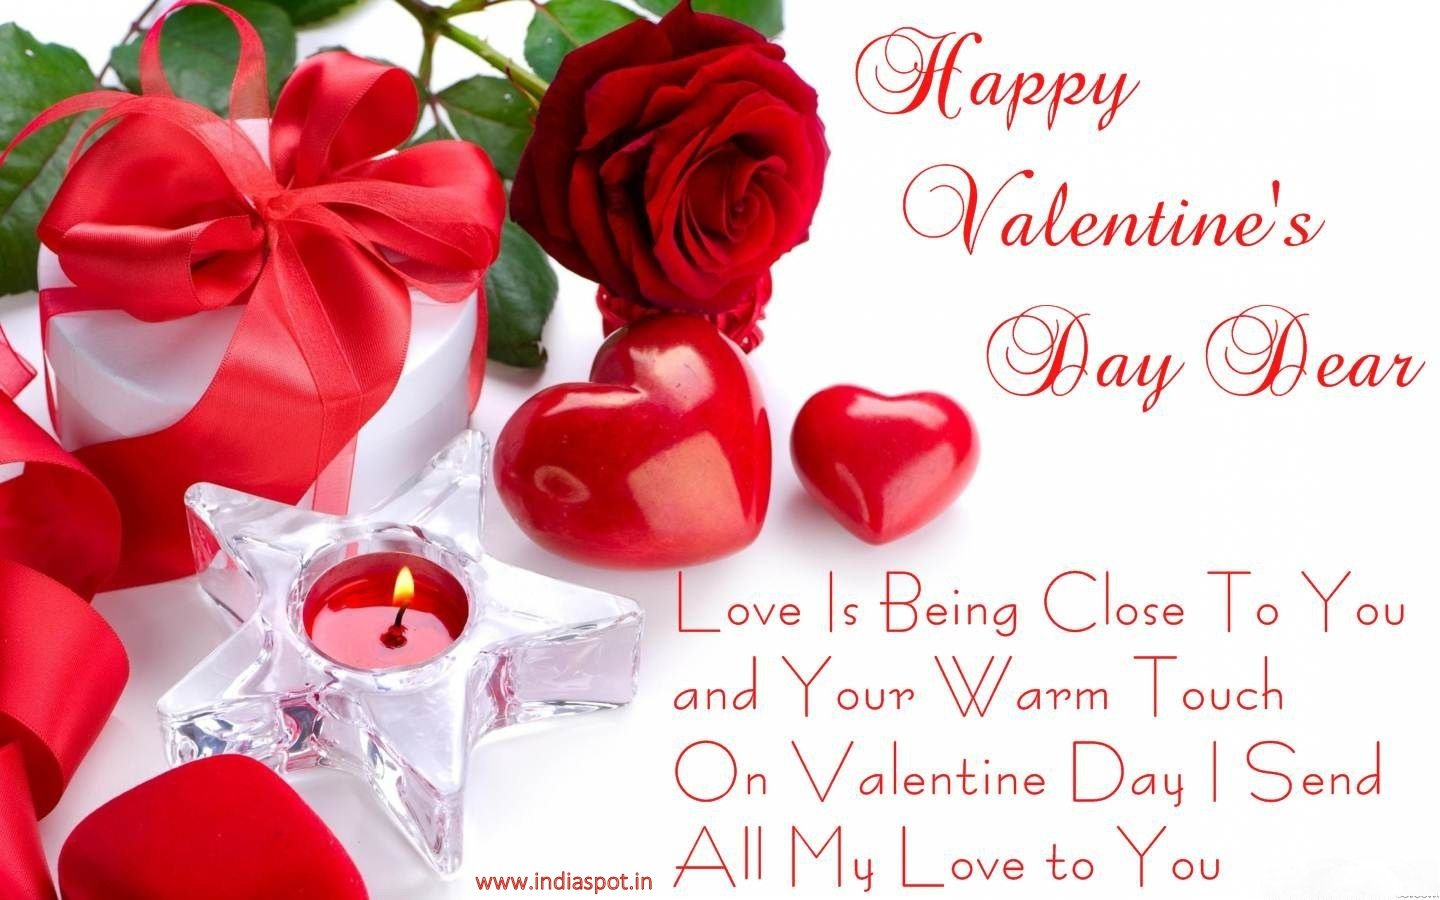 Happy Valentine's Day Images Quotes [2020 Update]